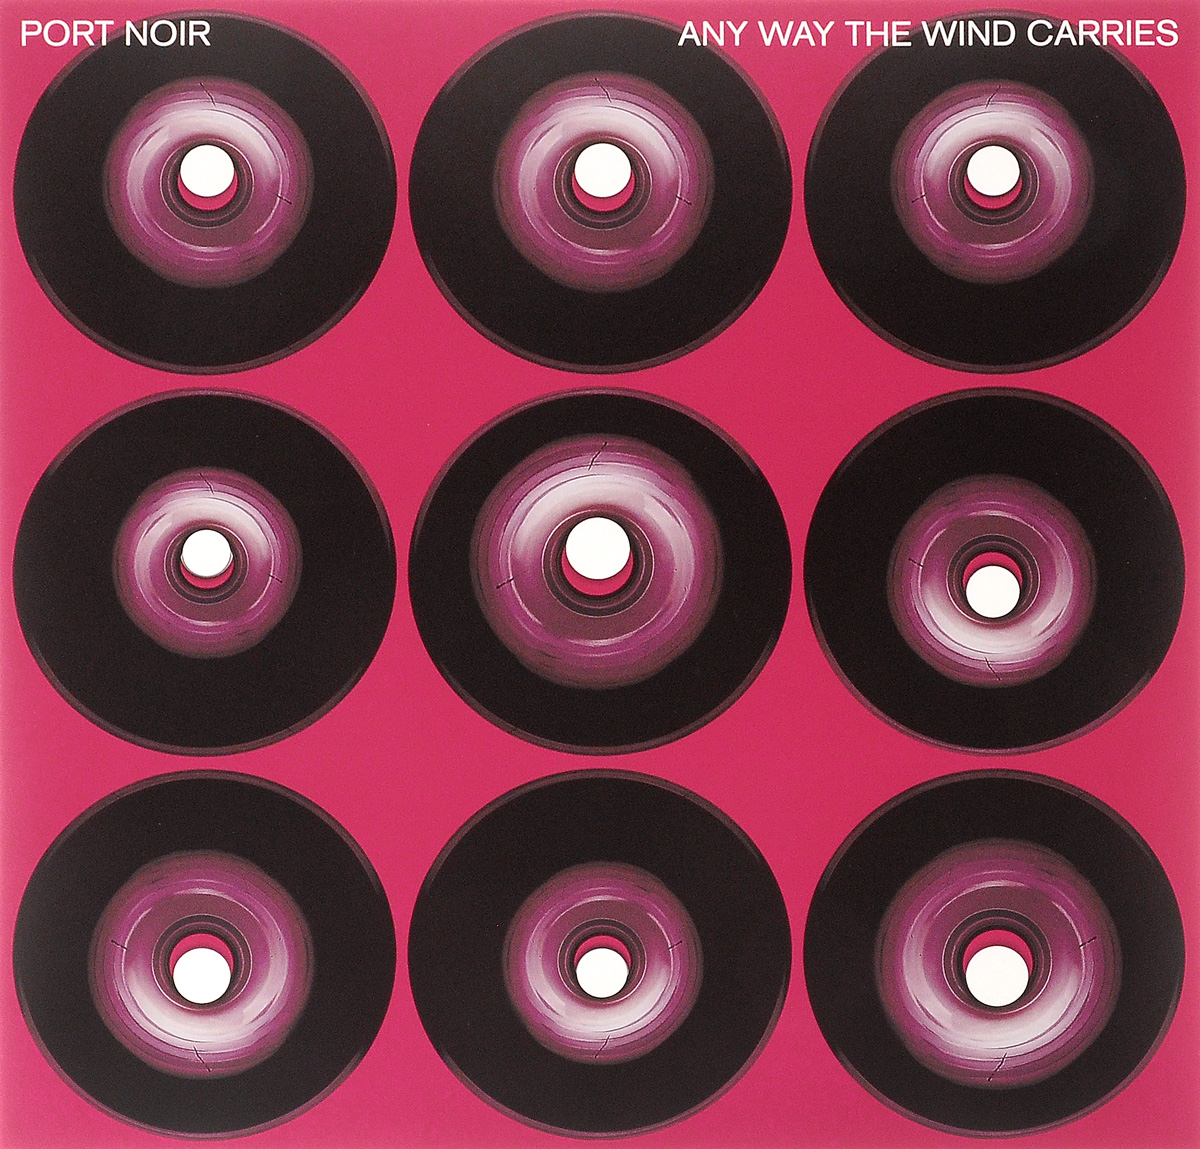 CD: 01. Any Way The Wind Carriesv02. Earth03. Vous Et Nous04. Black From The Ink05. Onyx06. Diamond07. Beyond The Pale08. Fur / Rye09. Exile10. The Sleep11. Come What Way12. The Oak Crown